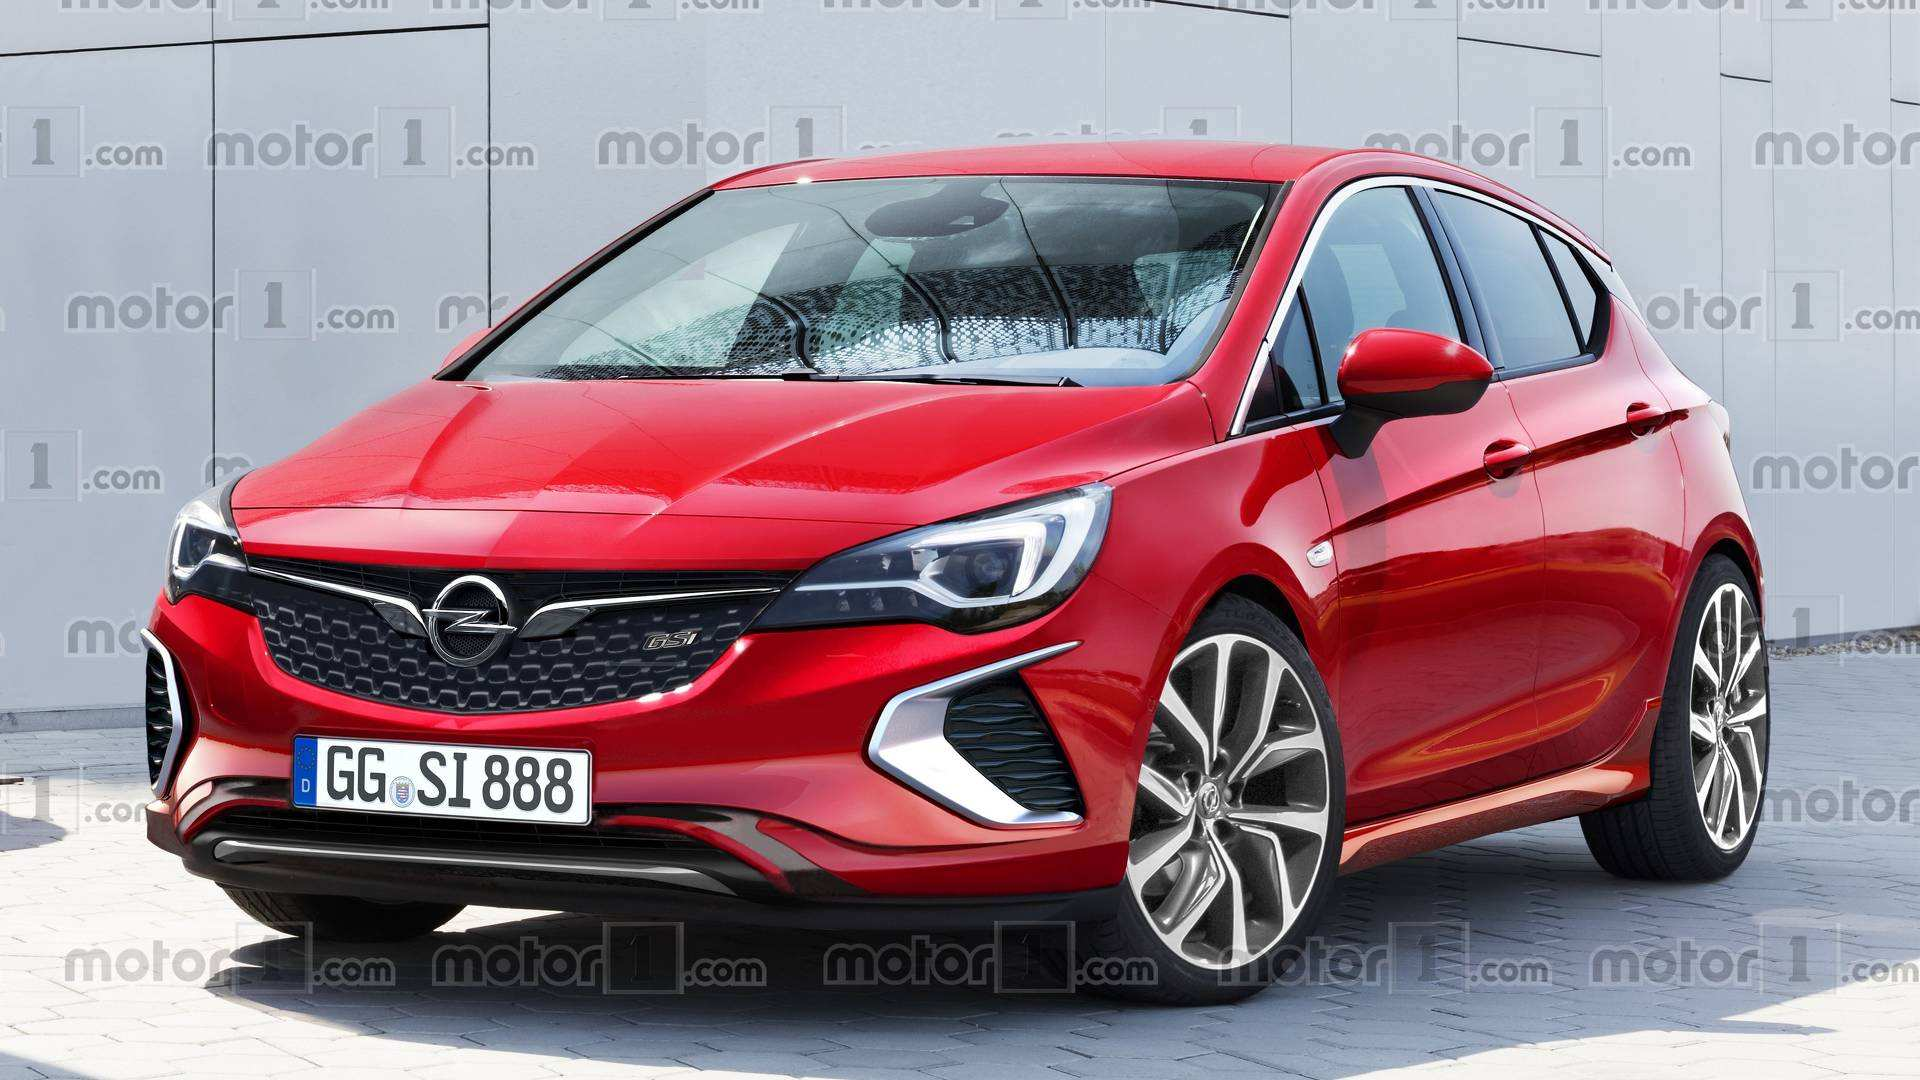 47 All New Opel Astra Opc 2020 Wallpaper